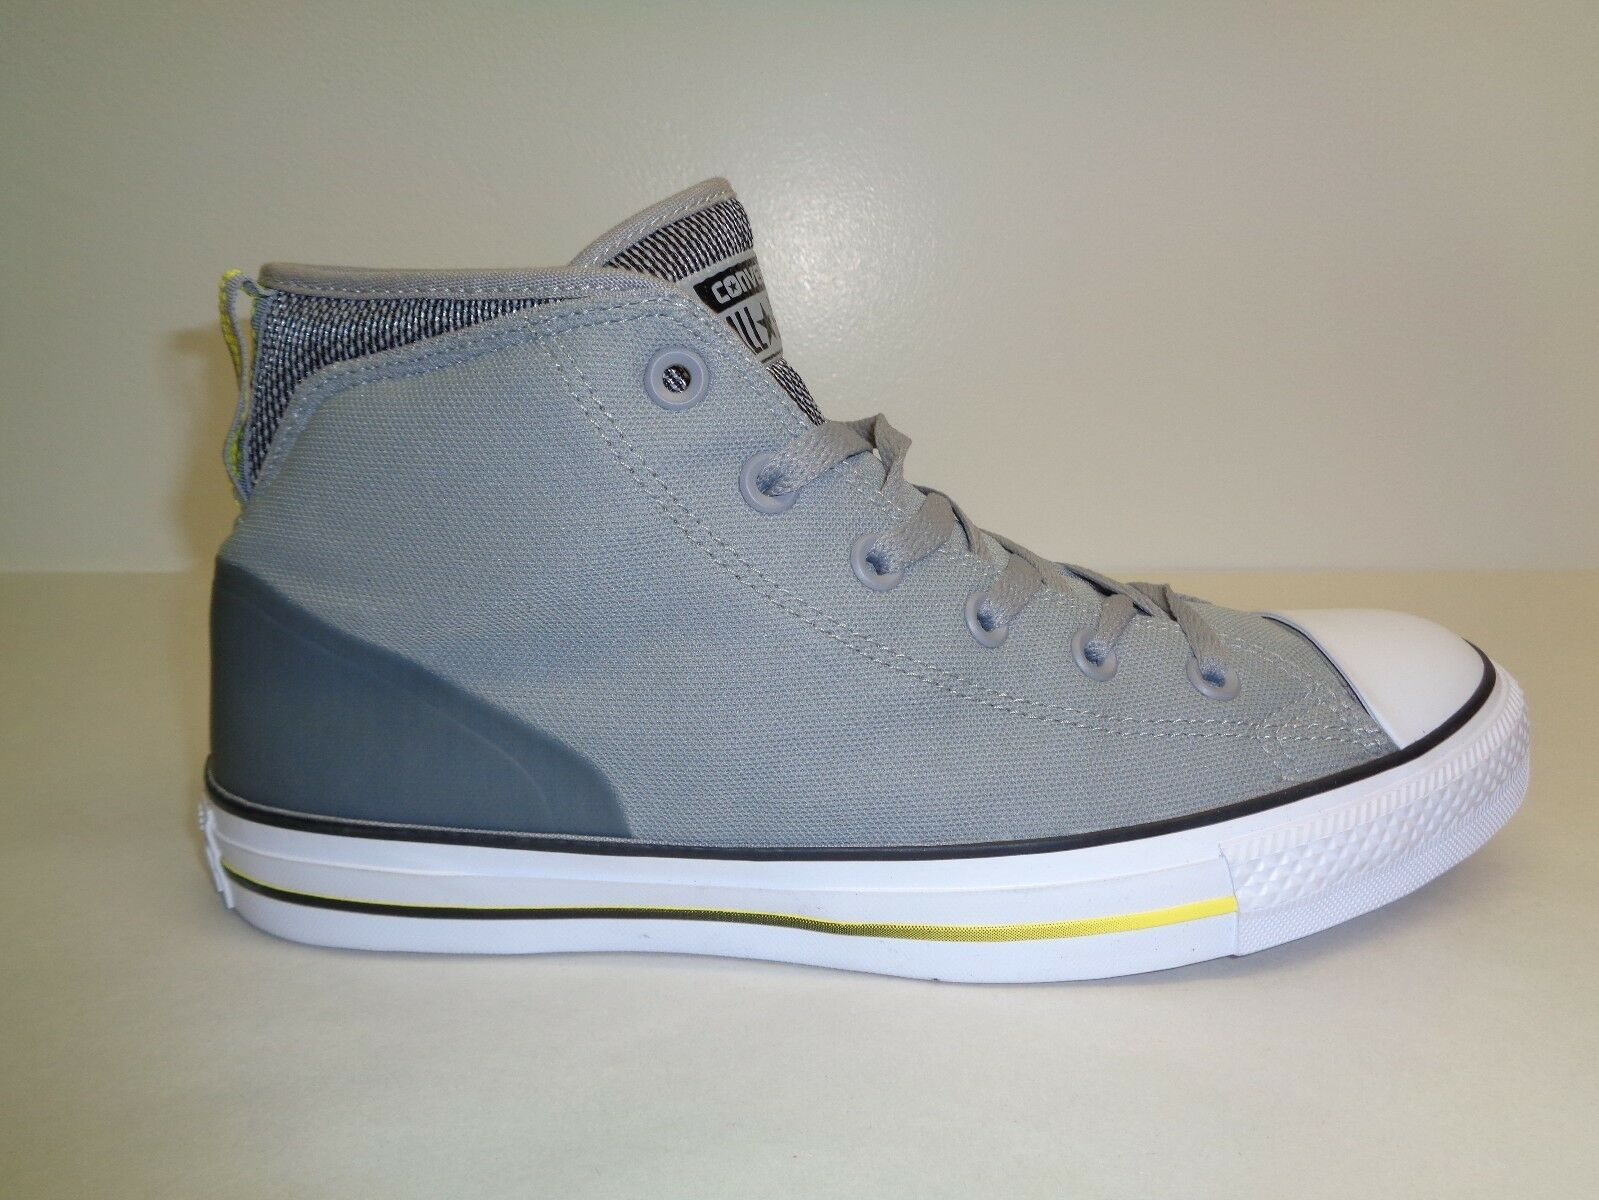 Converse Size 9 M CHUCK TAYLOR SYDE STREET MID Grey Sneakers New Mens Shoes